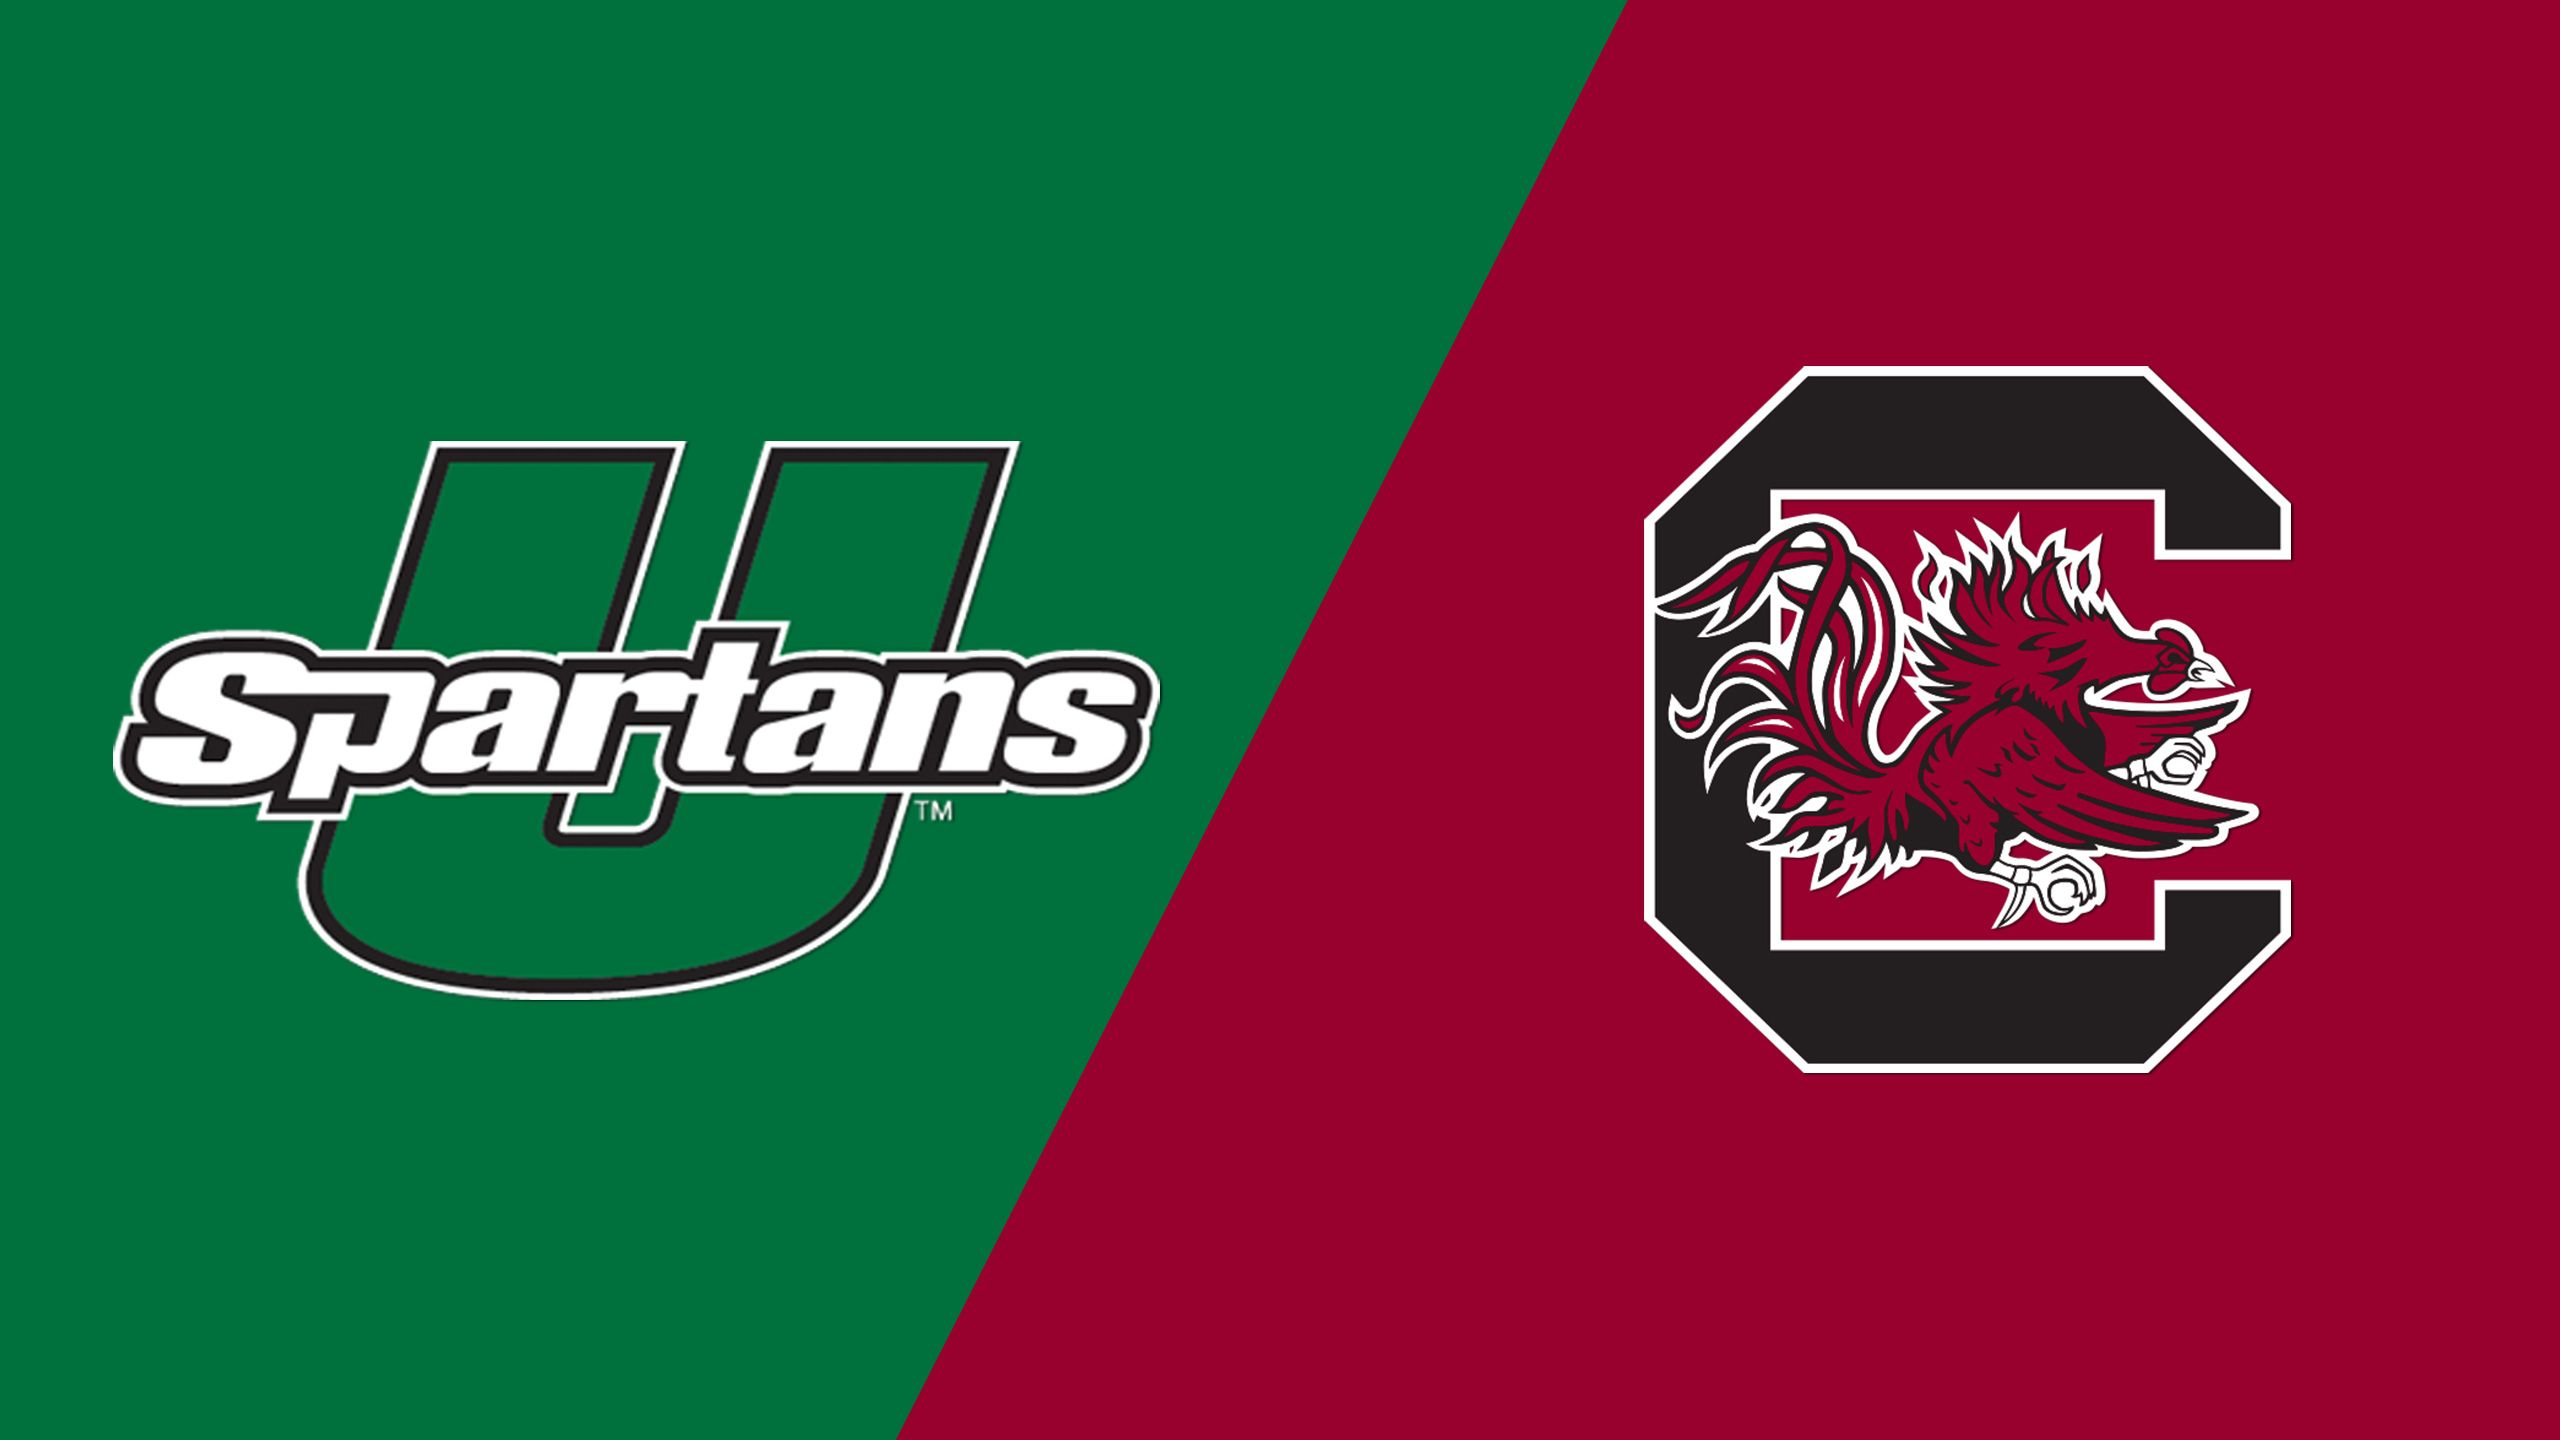 USC Upstate vs. South Carolina (Baseball)